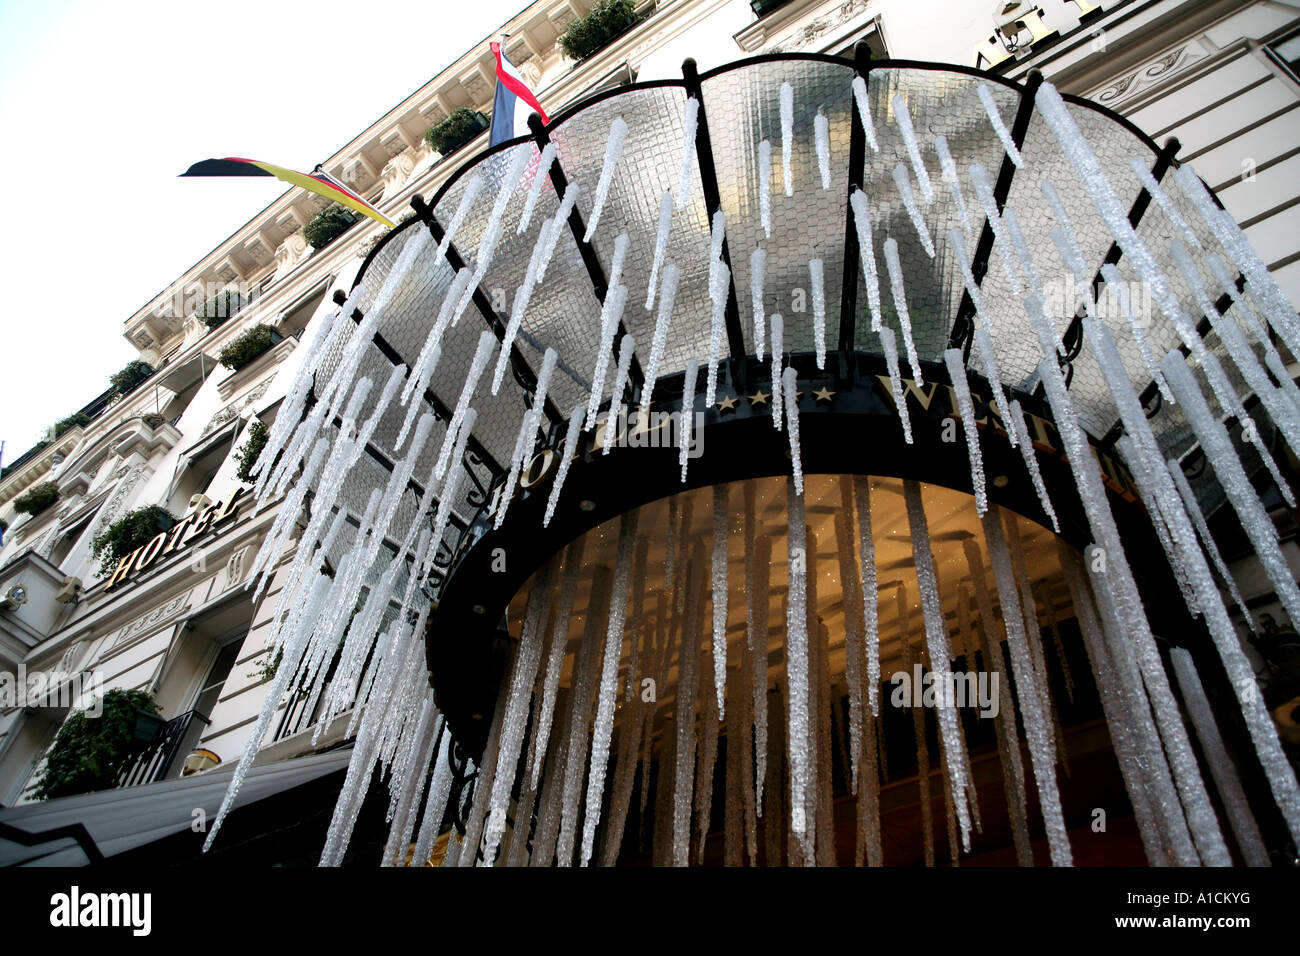 Astonishing Artificial Icicles Hang From Paris Hotel At Christmas Stock Photo Easy Diy Christmas Decorations Tissureus